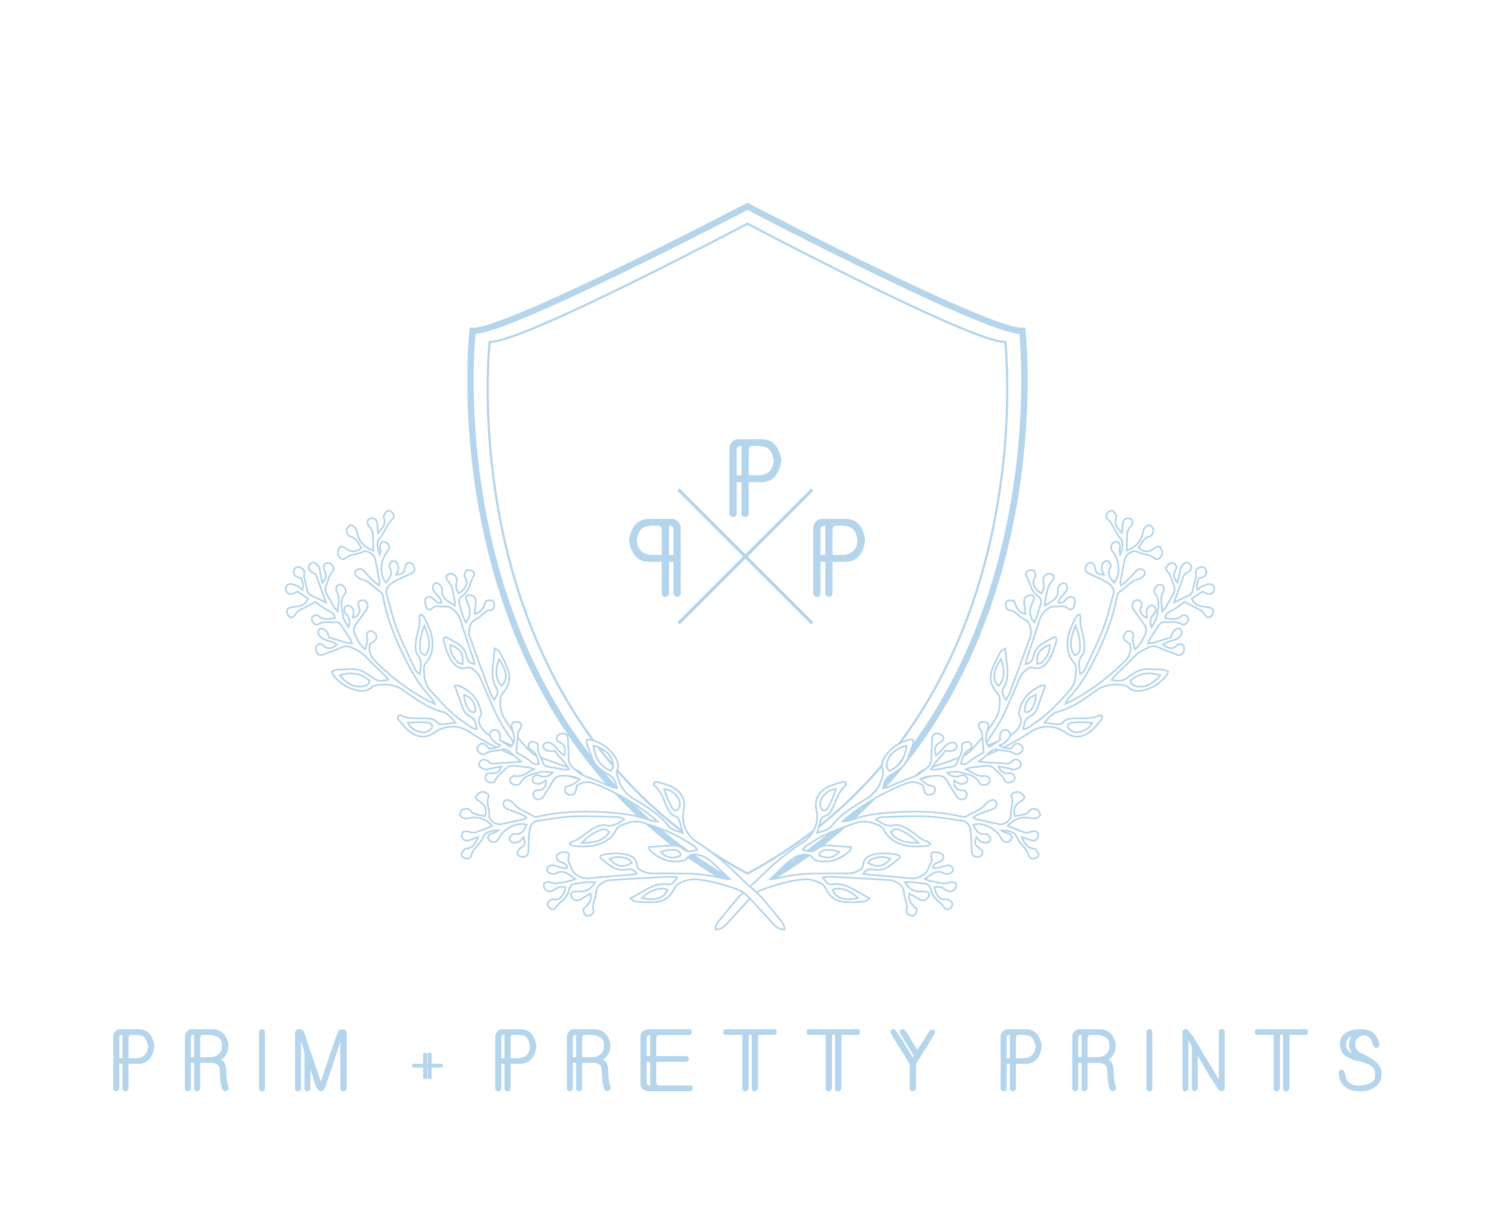 Prim + Pretty Prints